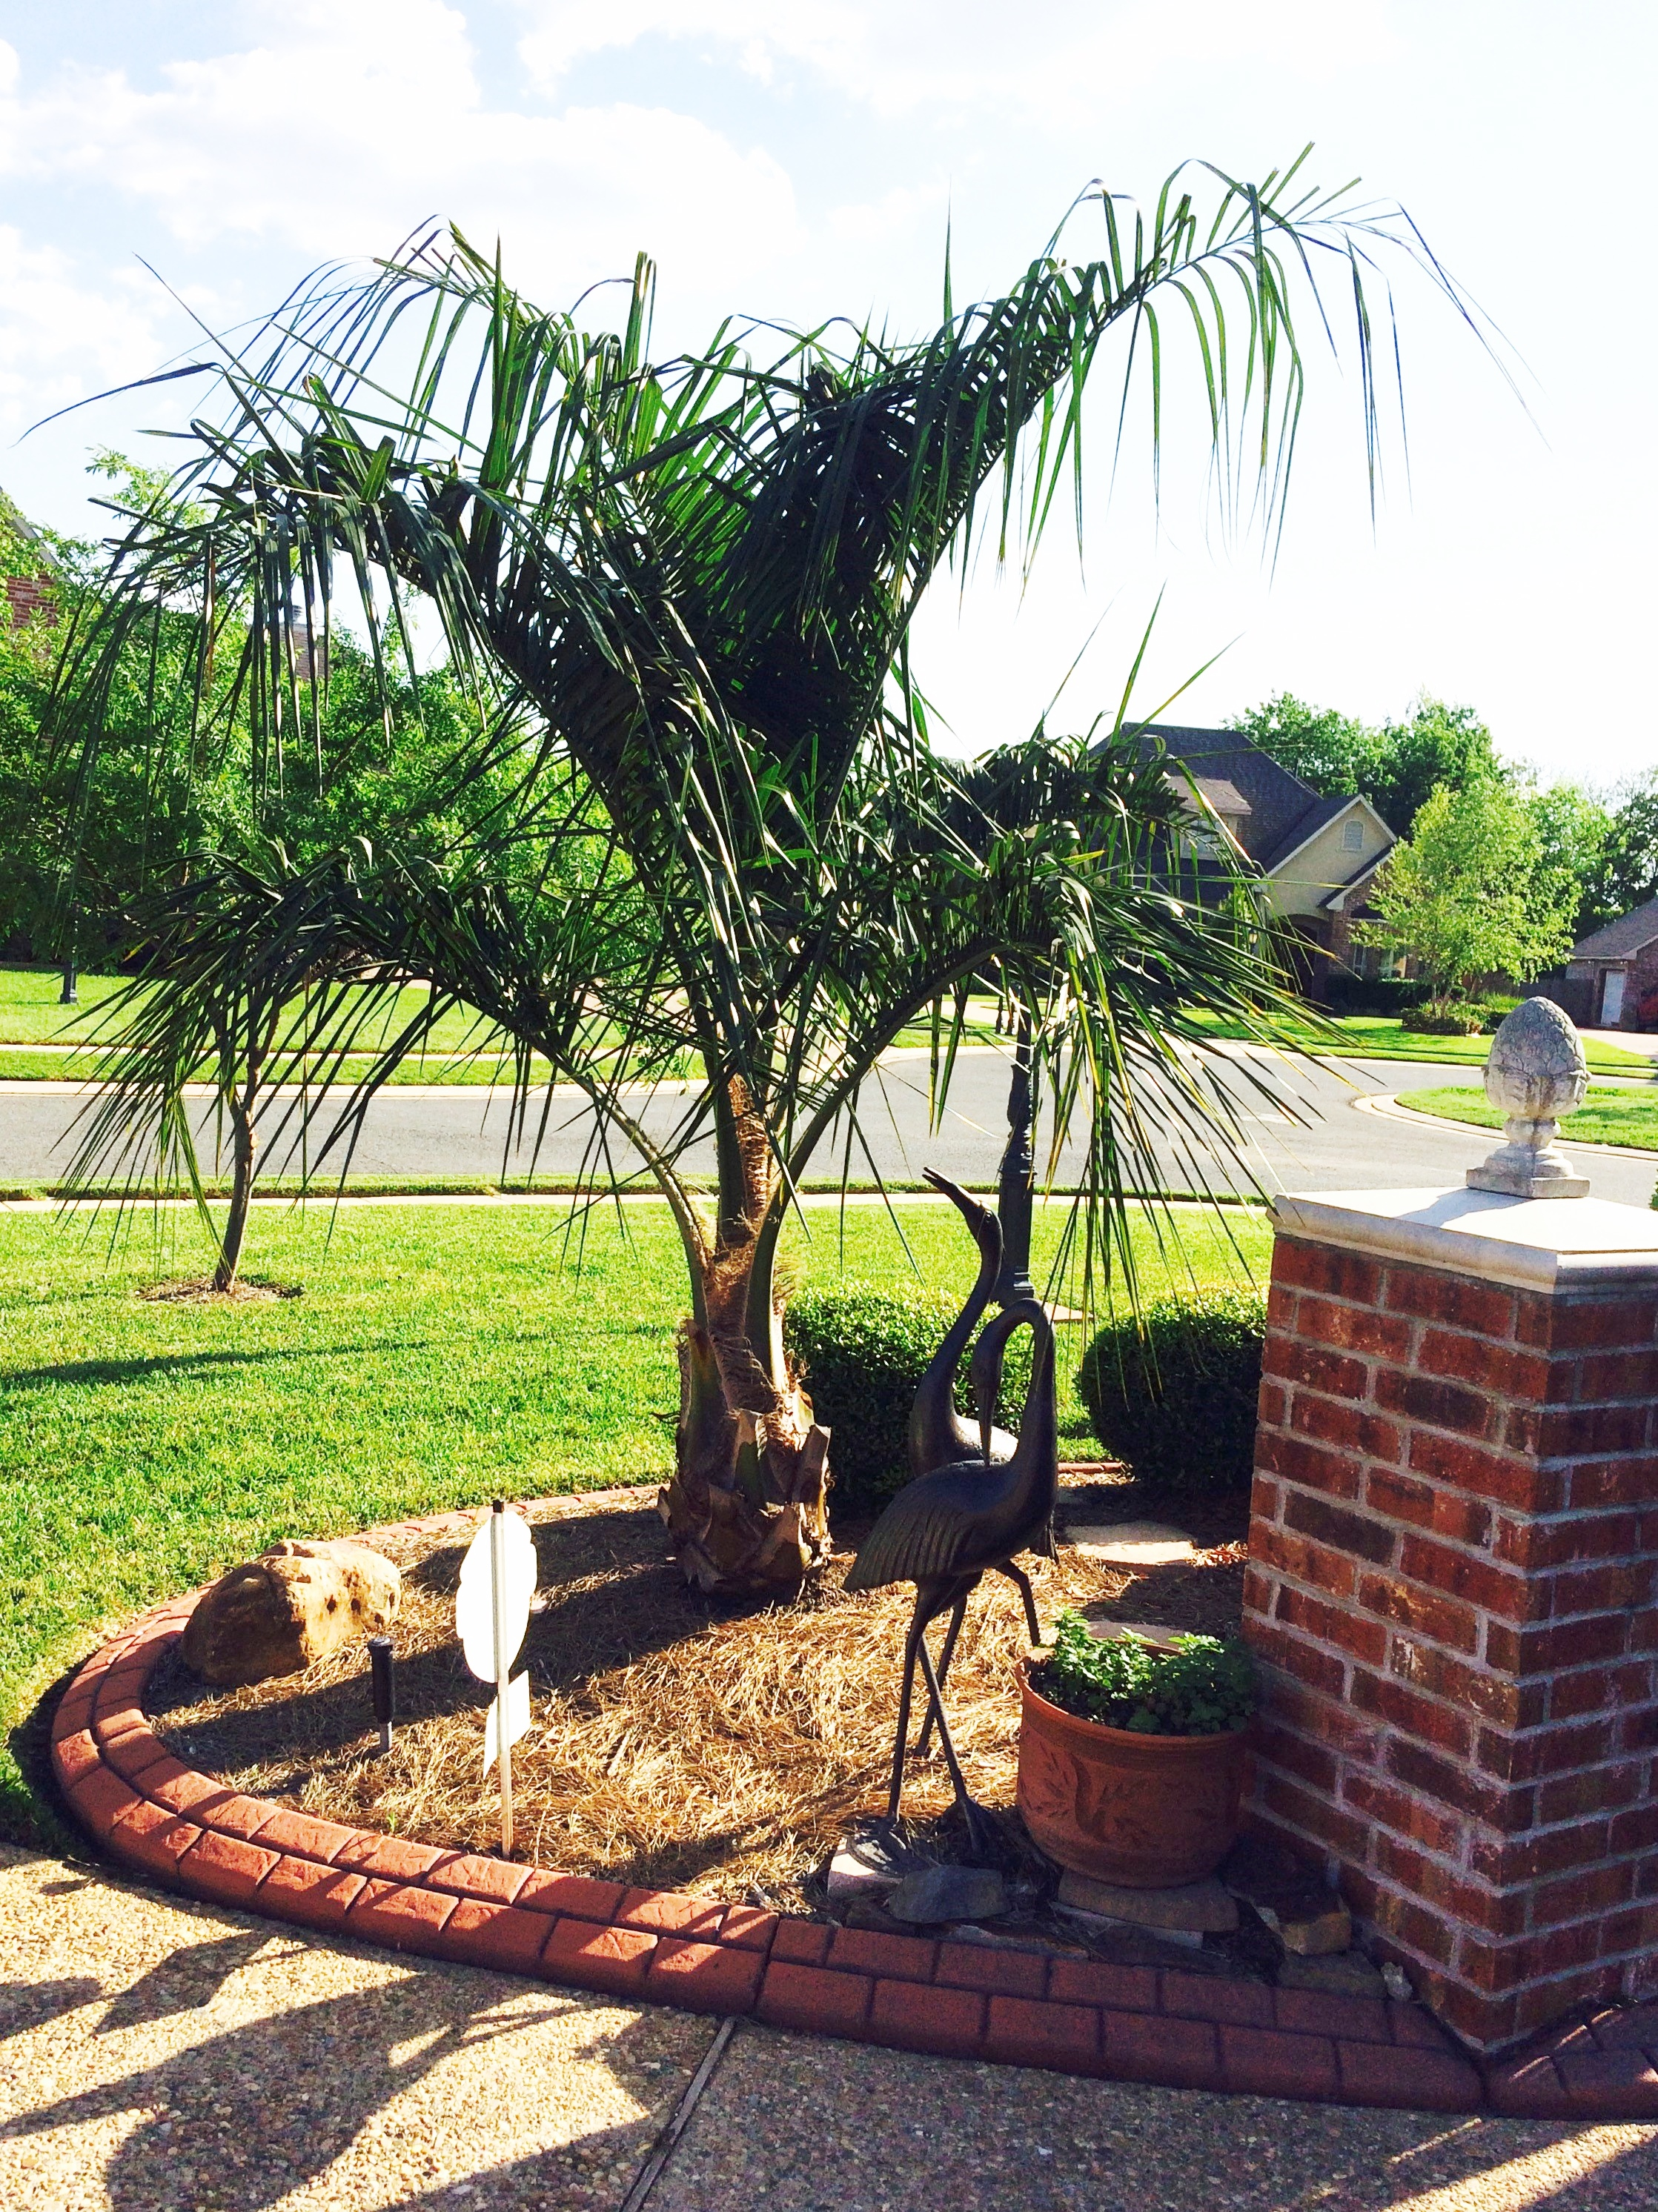 One of our Mule Palms growing well in Shreveport Louisiana, planted 2013 from 15 gal. pot.    Photo taken April 2016